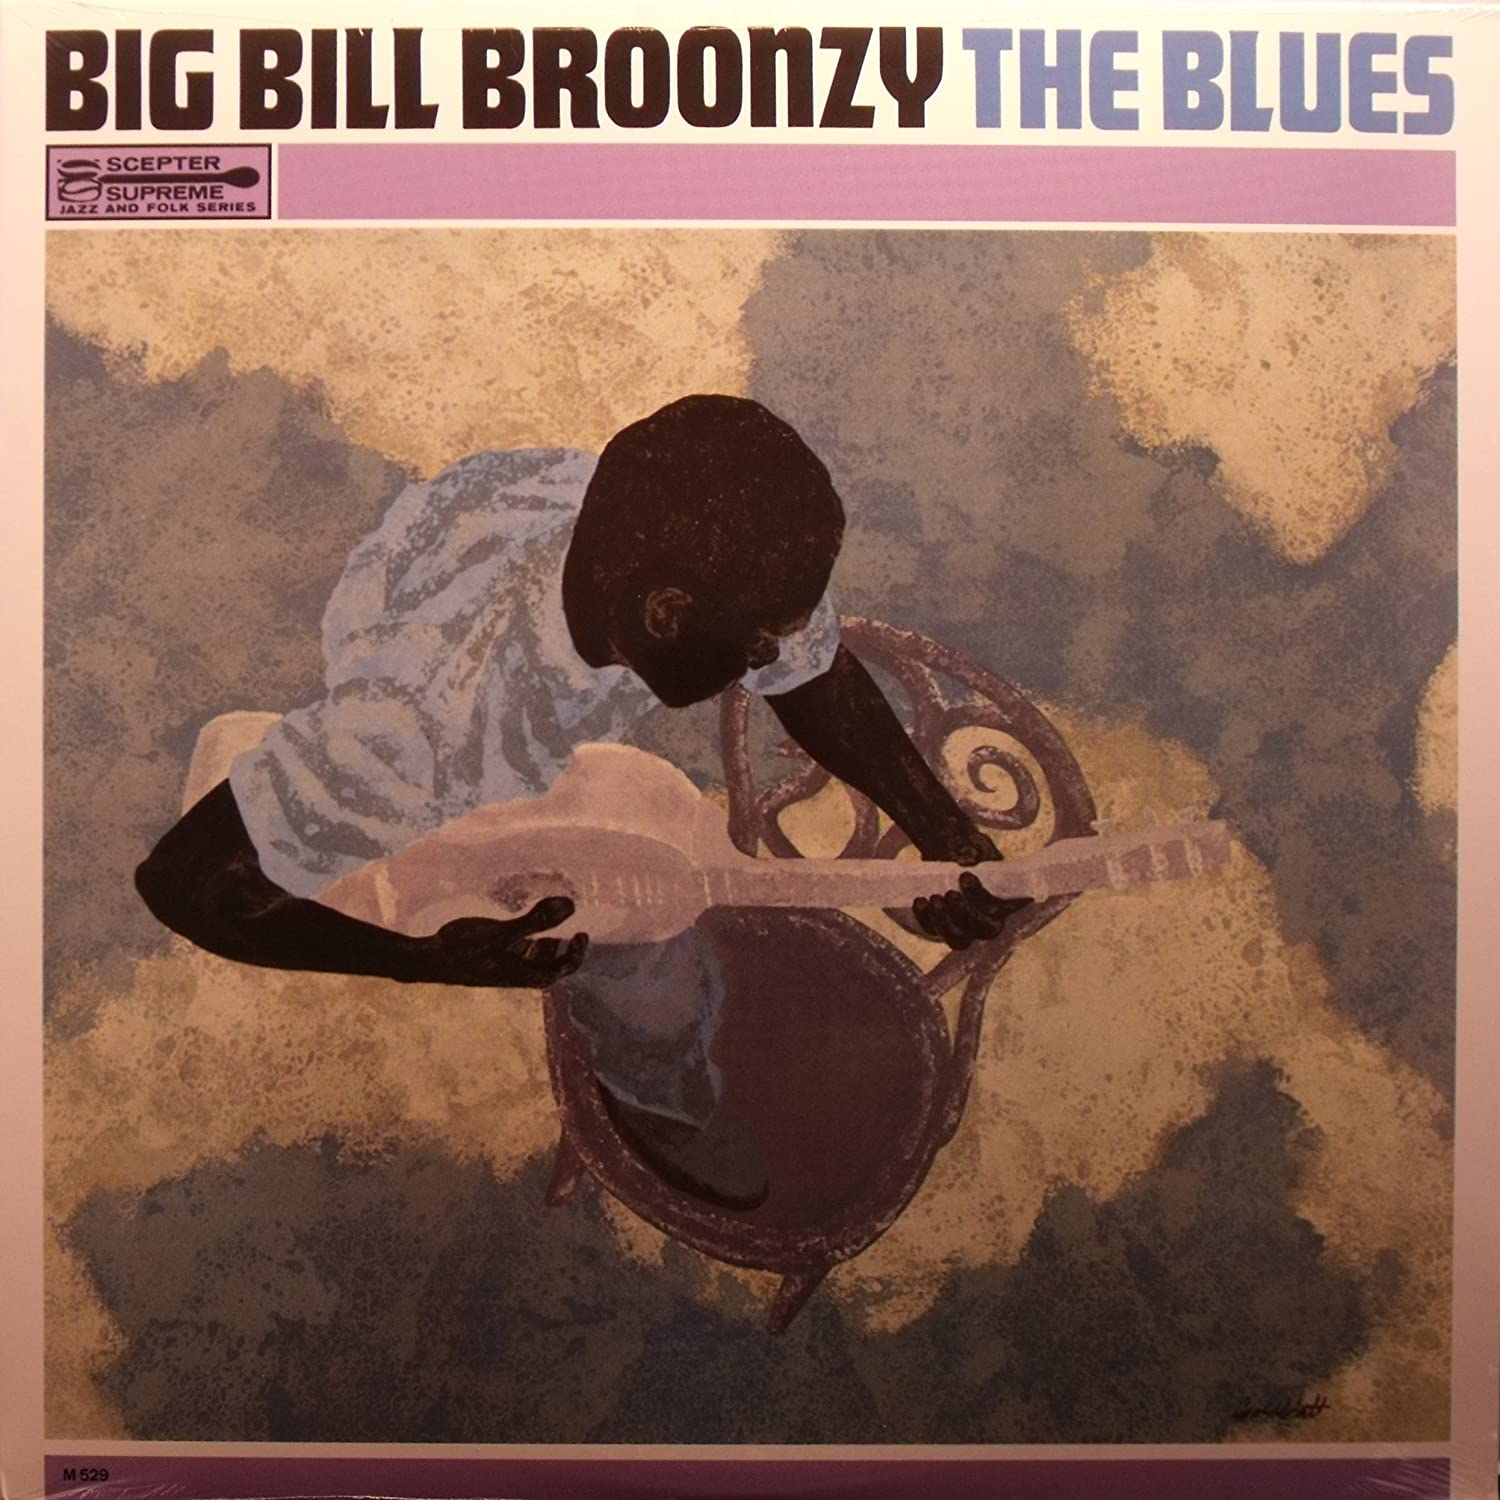 Big Bill Broonzy - The Blues